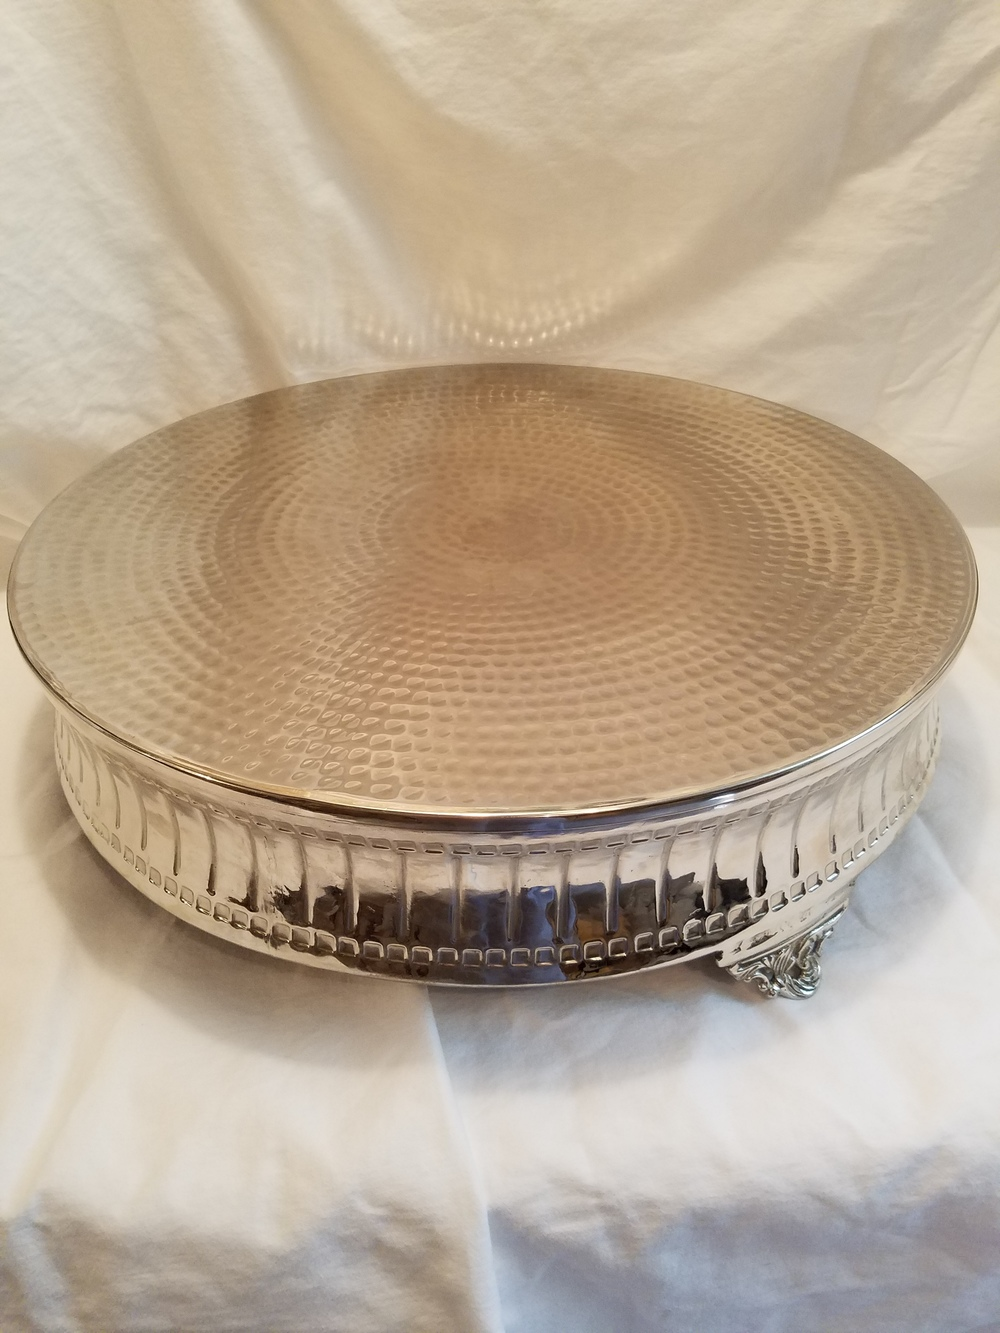 Large silver cake stand